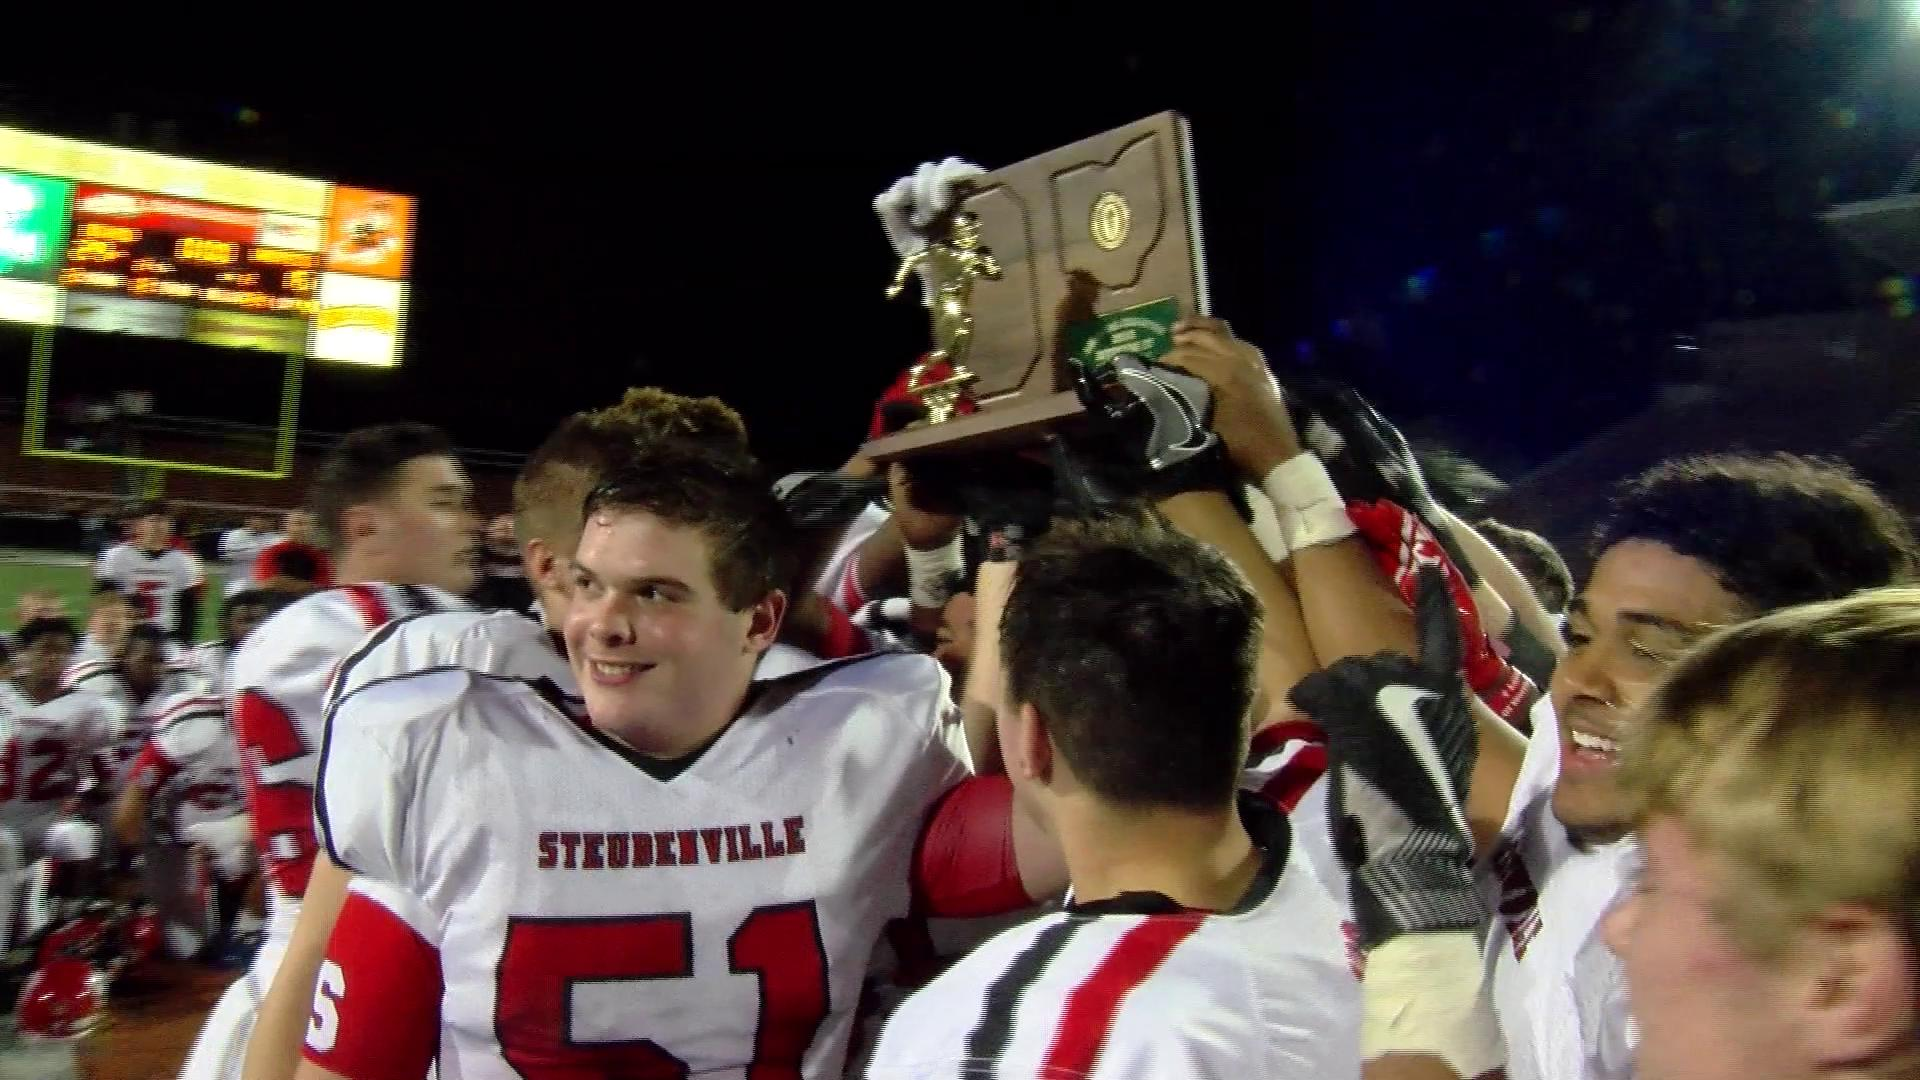 11.22.16 Team of the week - Steubenville Big Red